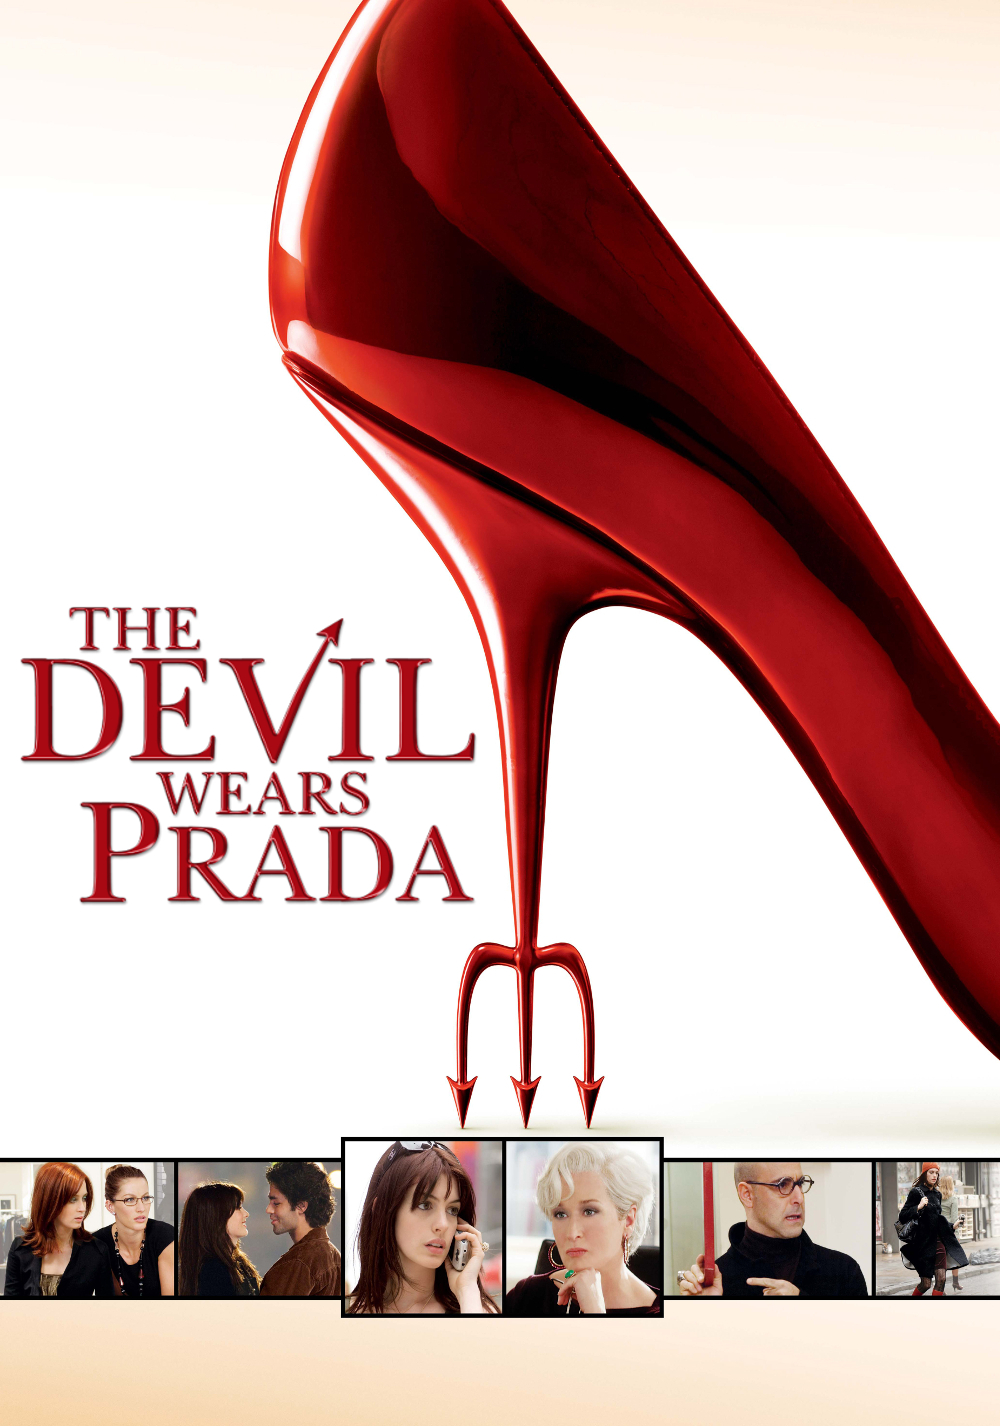 non verbal communication in the movie the devil wears prada The film, the devil wears prada, was a box office smash in 2006 and also holds some lessons for anyone having to deal with bullying in the workplace.